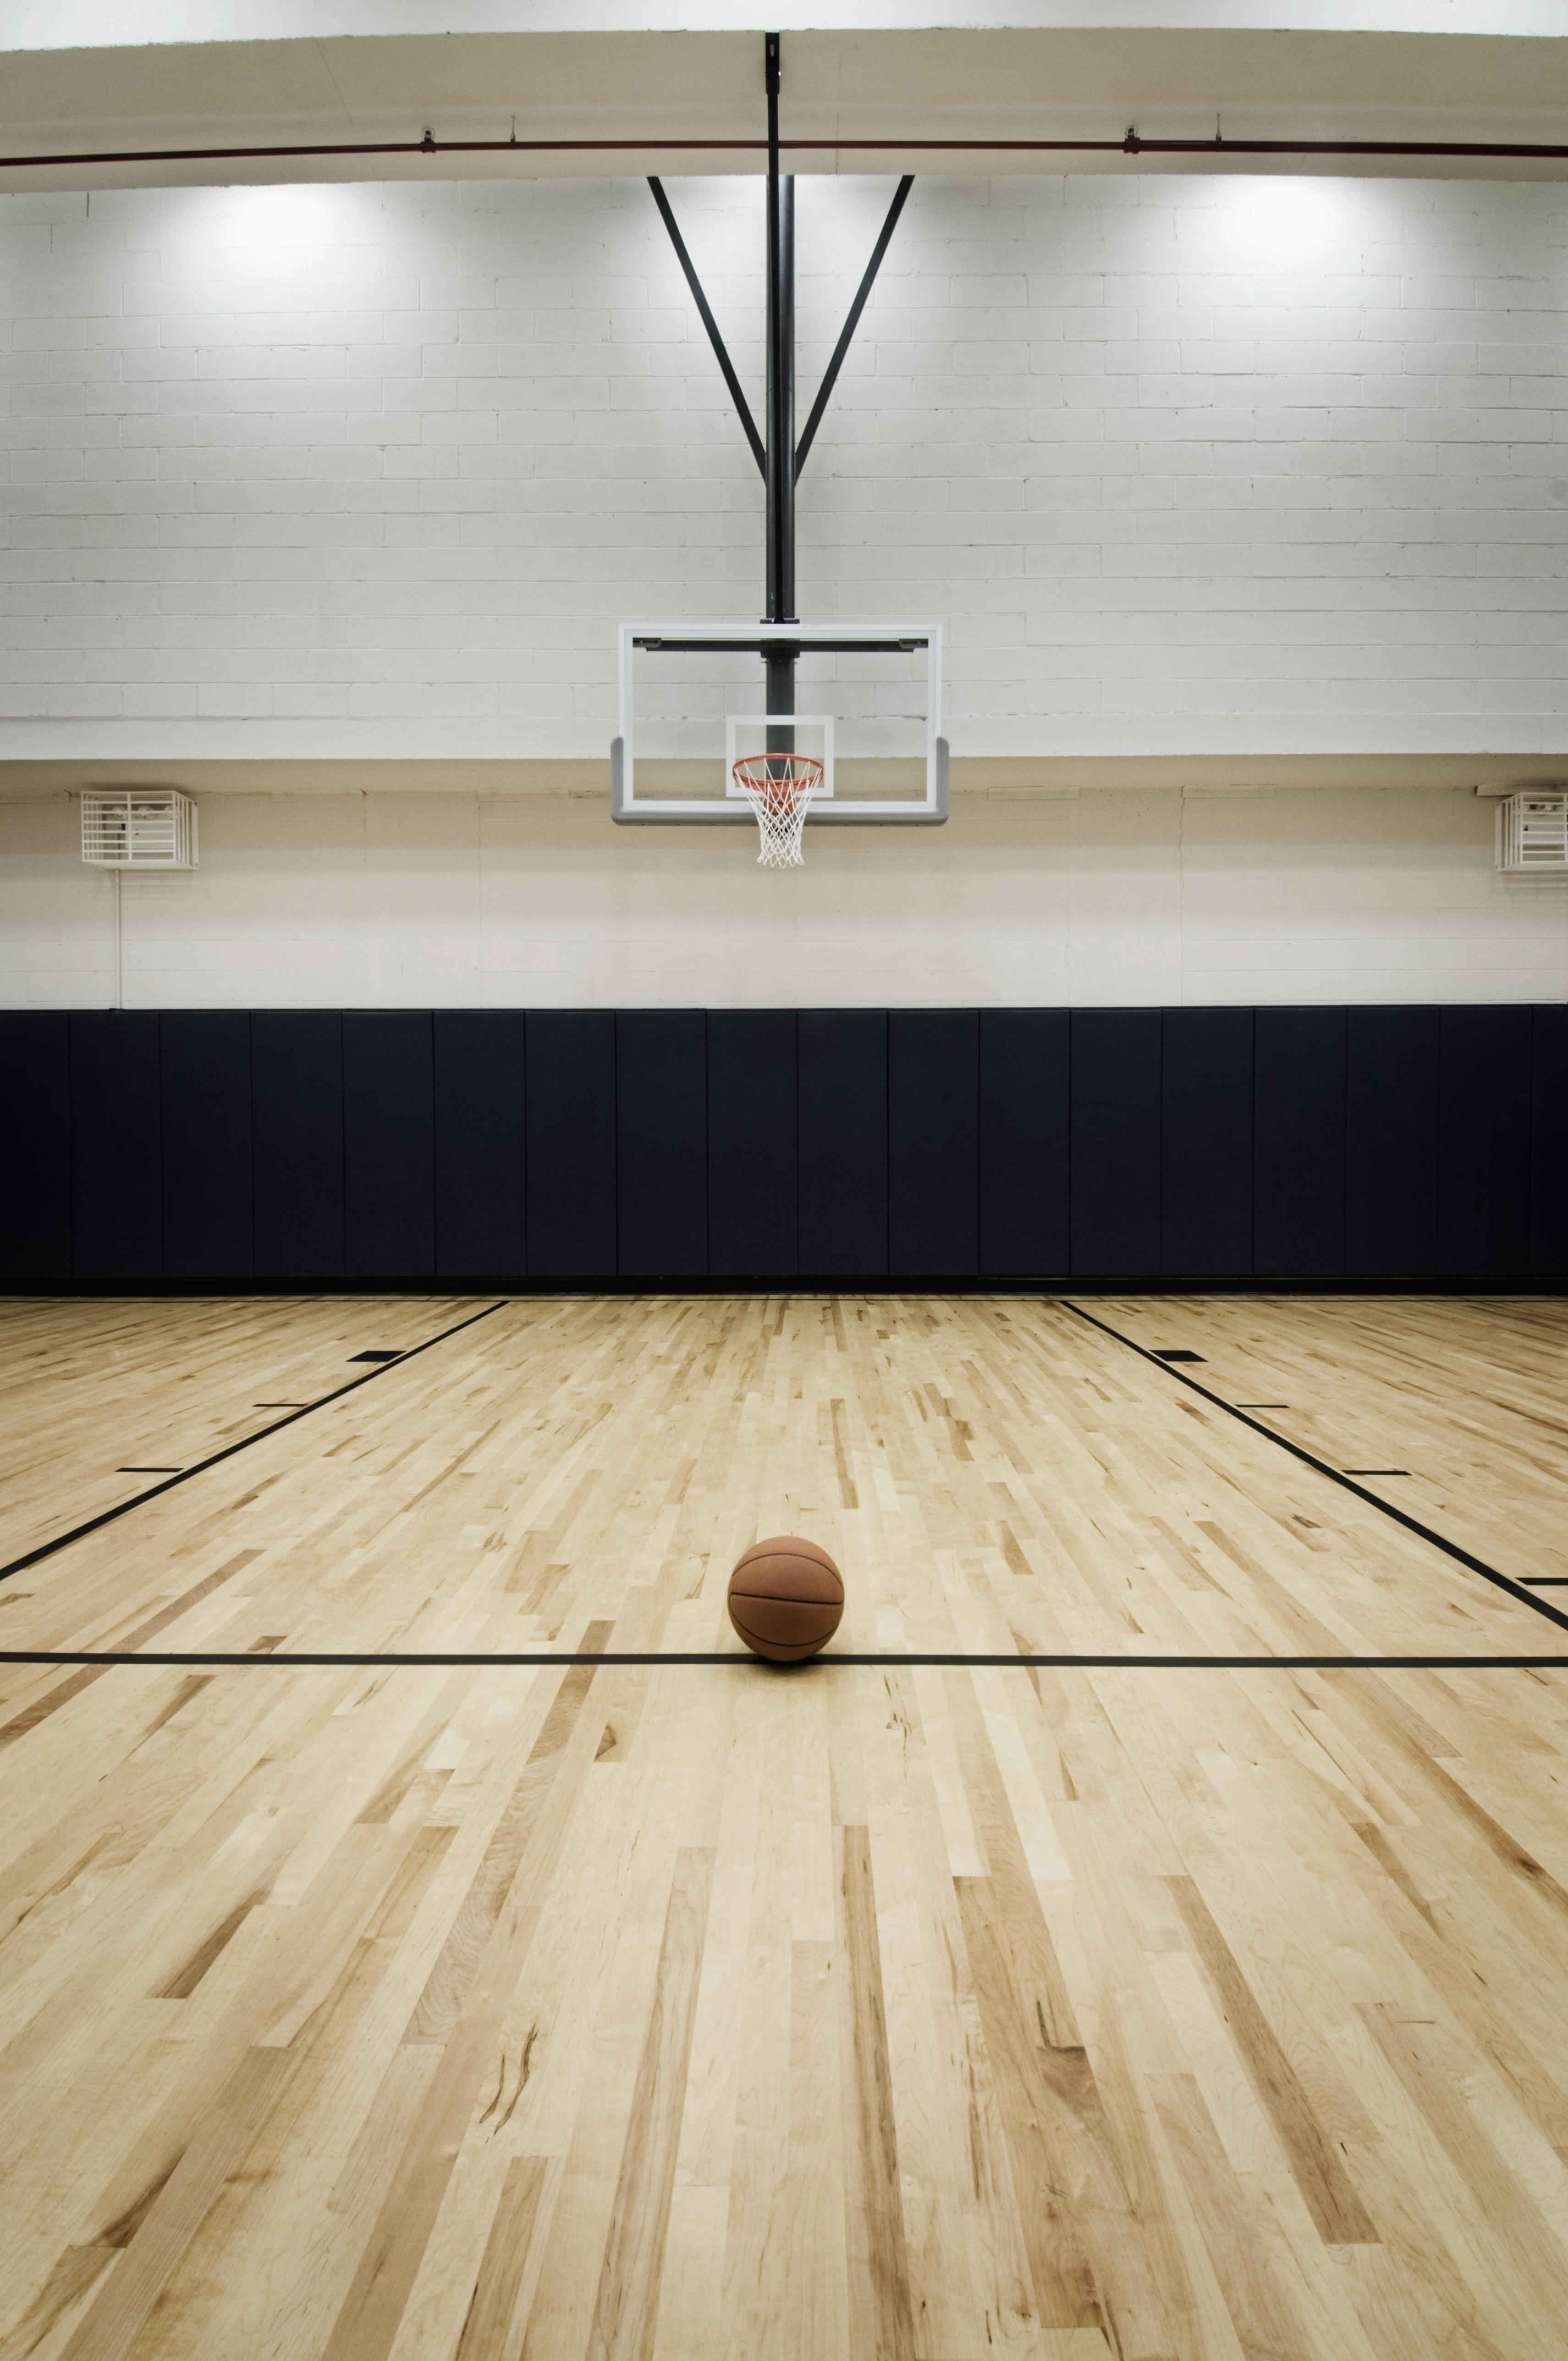 A basketball sits on the free throw line.